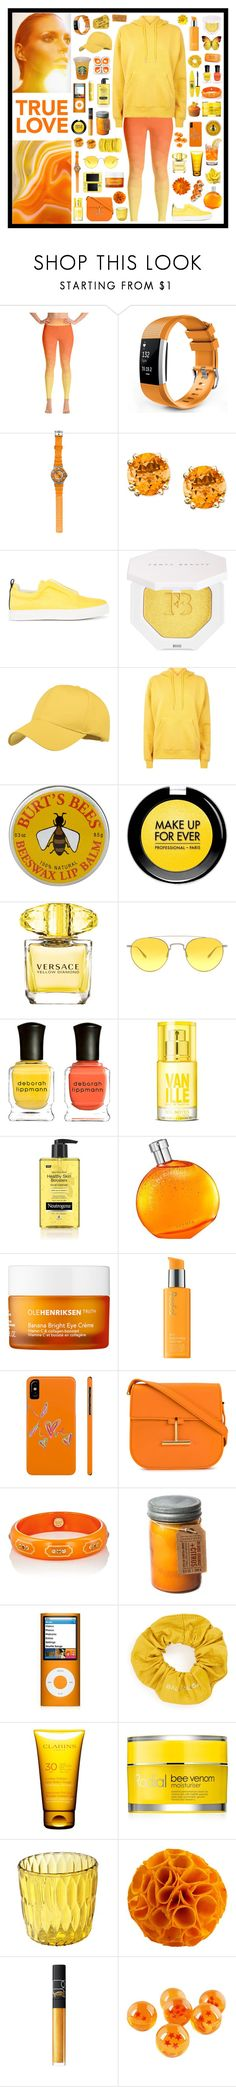 """true love"" by tiny-girl-big-heart ❤ liked on Polyvore featuring Anja, Dakota Watch Company, Pierre Hardy, Puma, John Lewis, MAKE UP FOR EVER, Versace, Barton Perreira, Deborah Lippmann and Neutrogena"